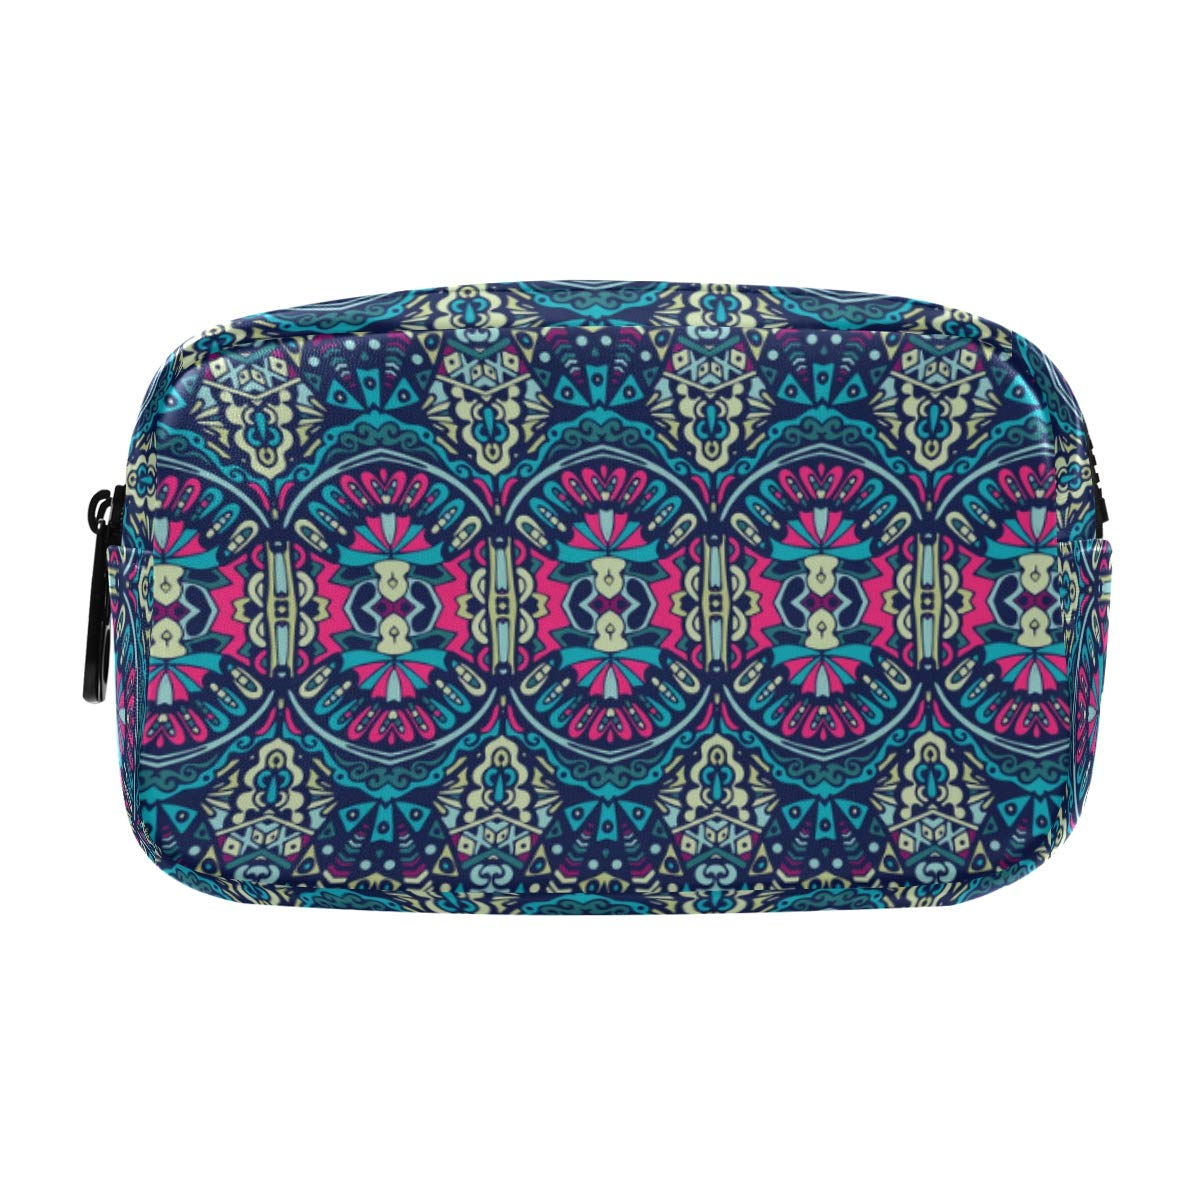 ALAZA Abstract Geometric Bohemian Ethnic Pattern Cosmetic Bag Leather Pencil Case Waterproof Portable Travel Makeup Pouch with Zipper for Women Girls Teens